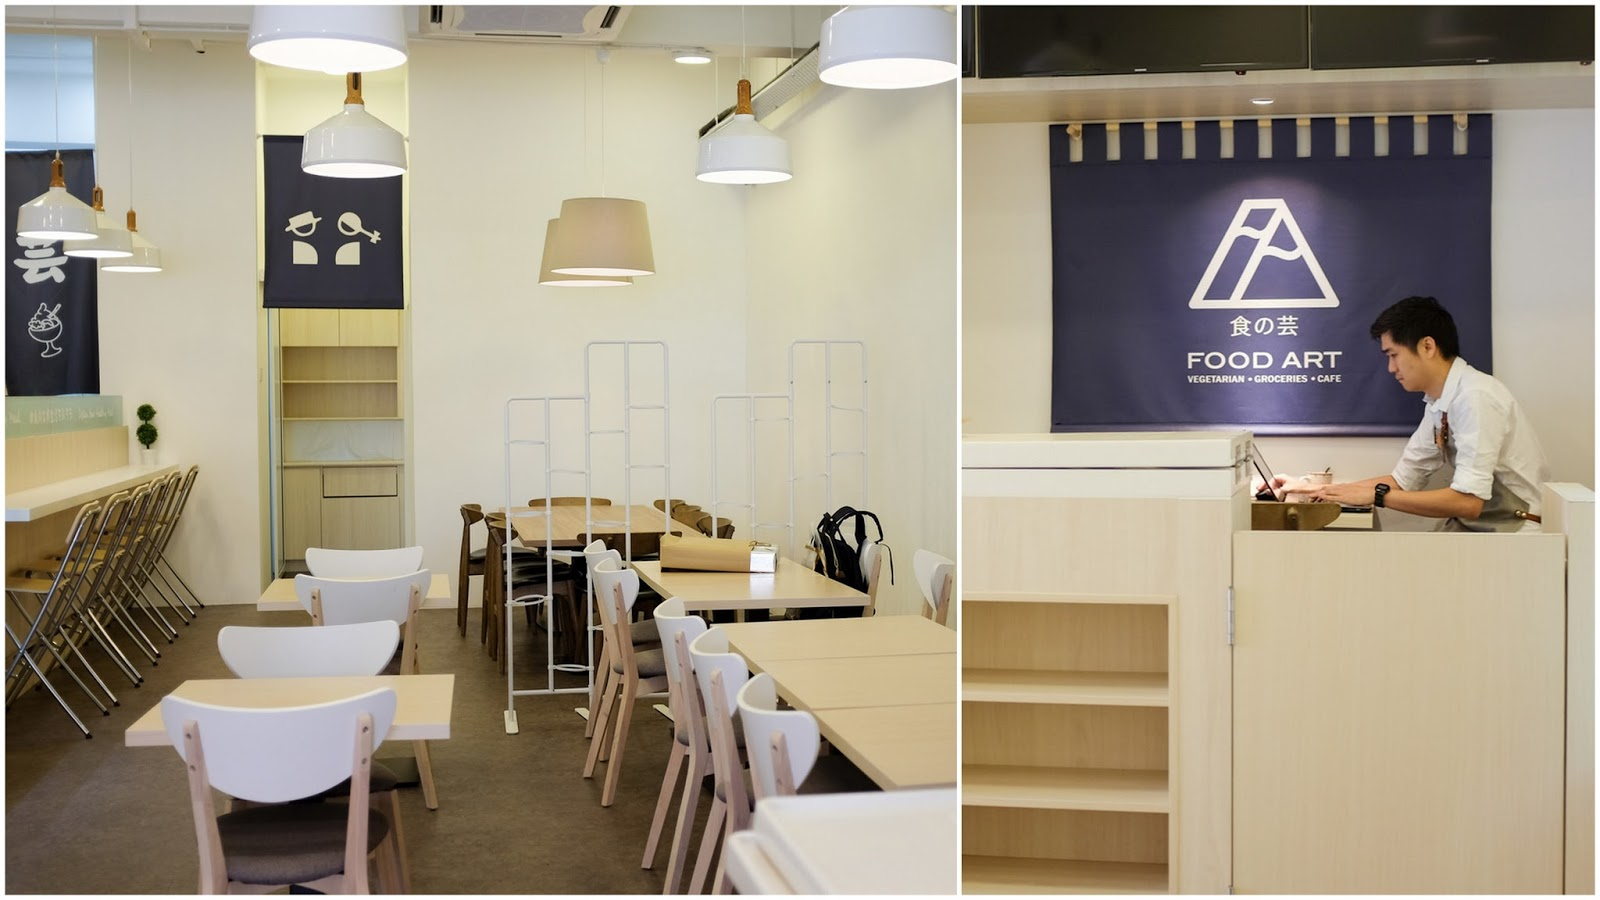 eat drink kl: food art groceries & cafe @ subang